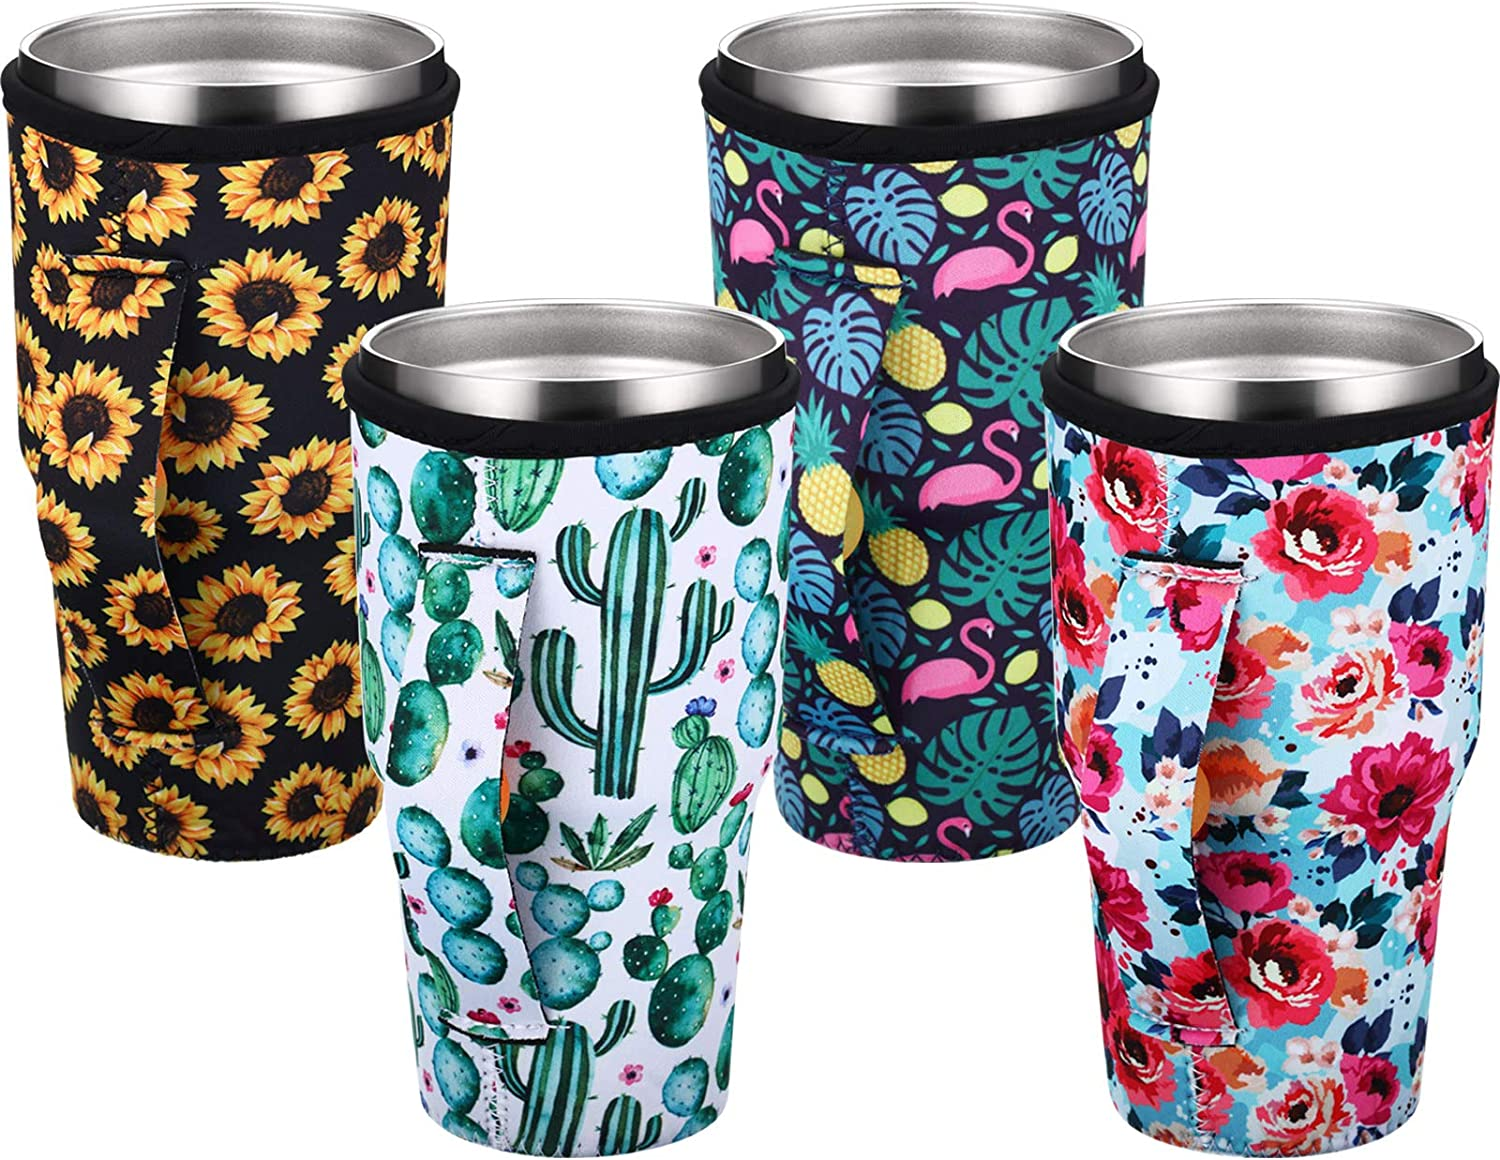 4 Pieces Coffee Cup Sleeve Reusable Neoprene Insulated Sleeves Cup Cover Holders Drinks Sleeve Holder for 30-32 oz Cold Hot Beverages, 4 Styles, Flower, Flamingo, Cactus, Sunflower